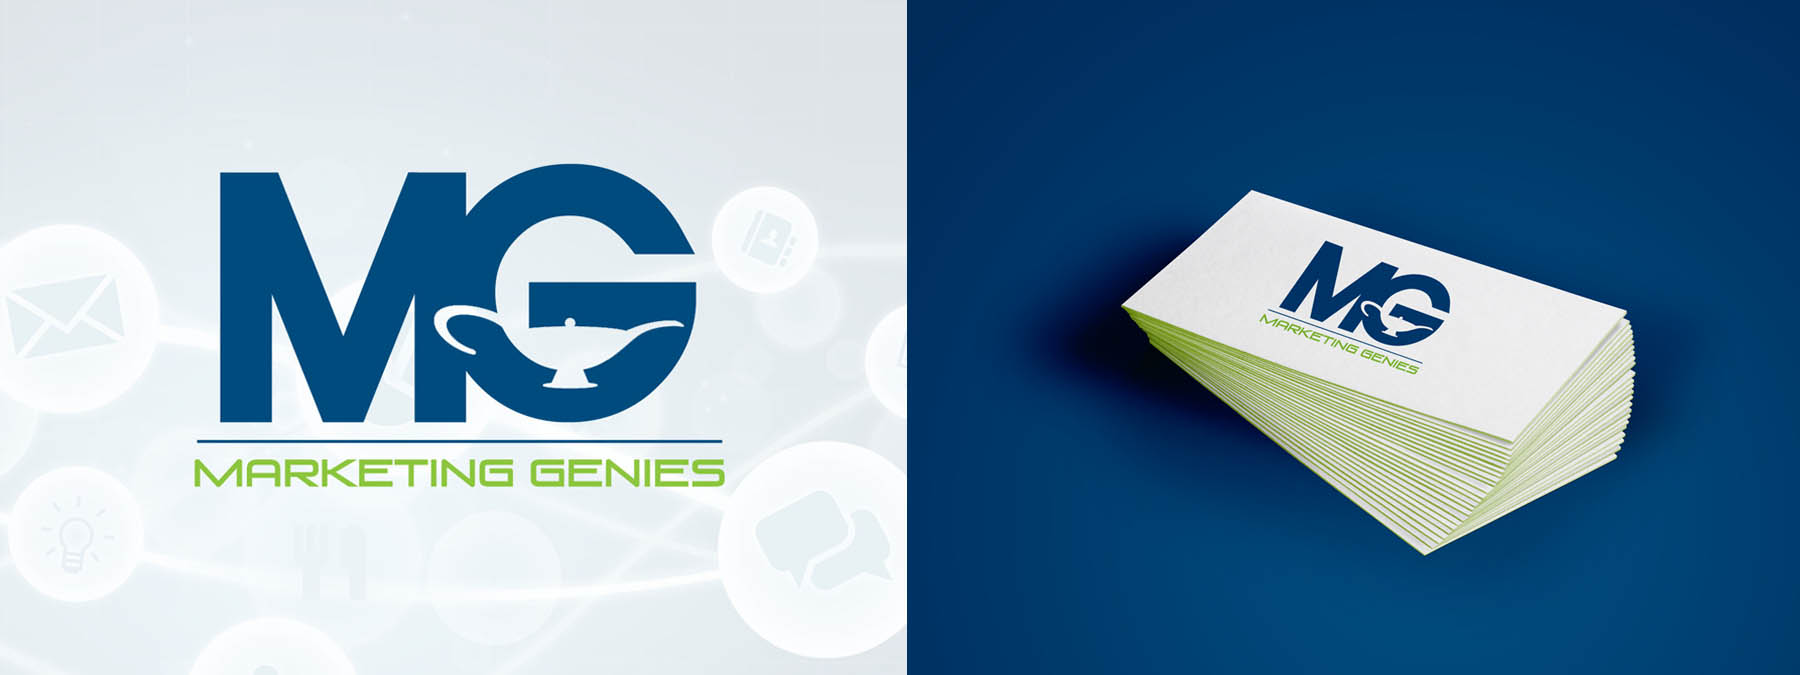 Marketing Genies logo banner.jpg